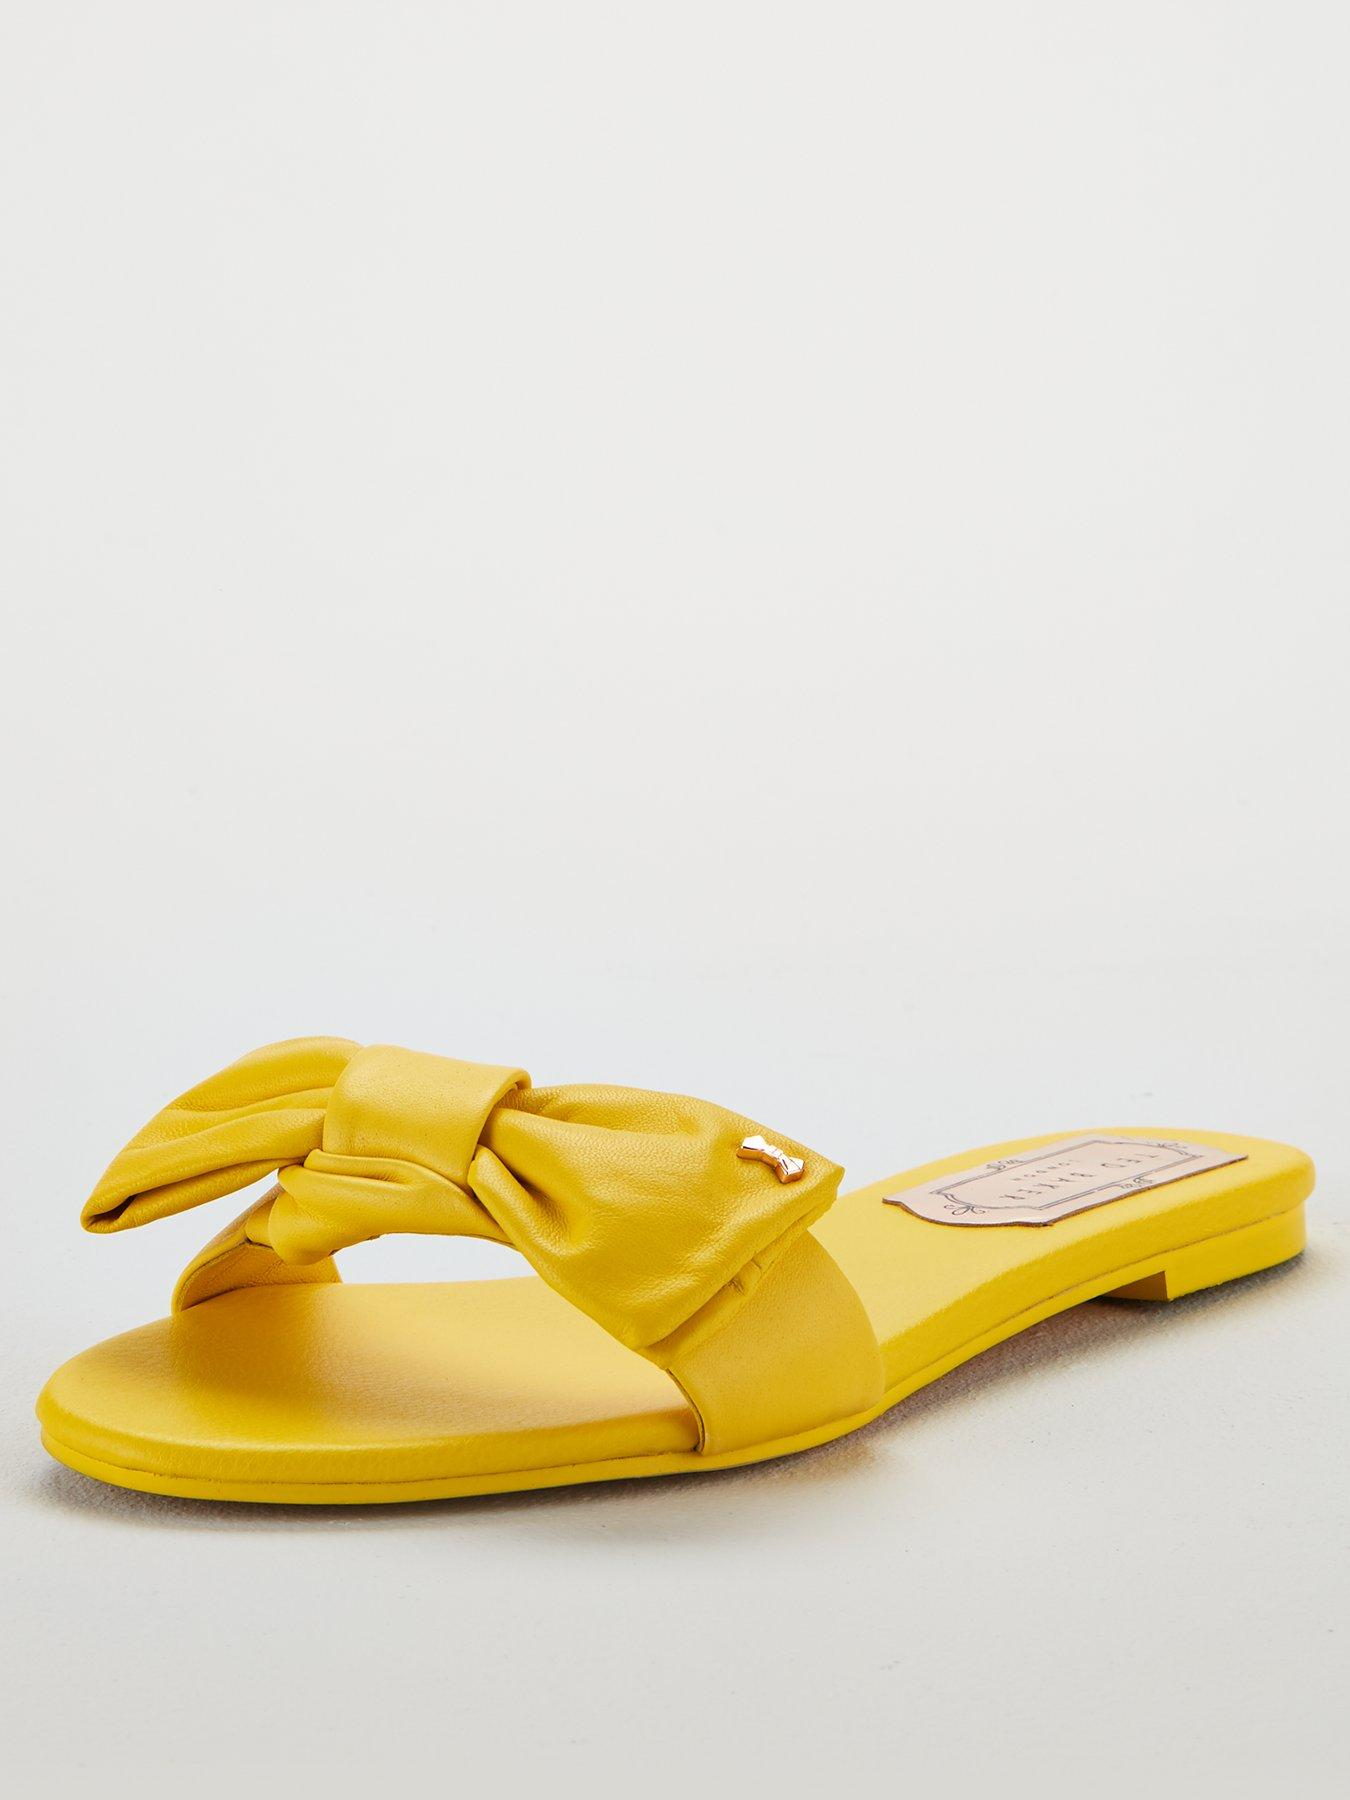 uk co Women YellowSandalsamp; Flops Very Boots Flip Shoes zGUqVpMS